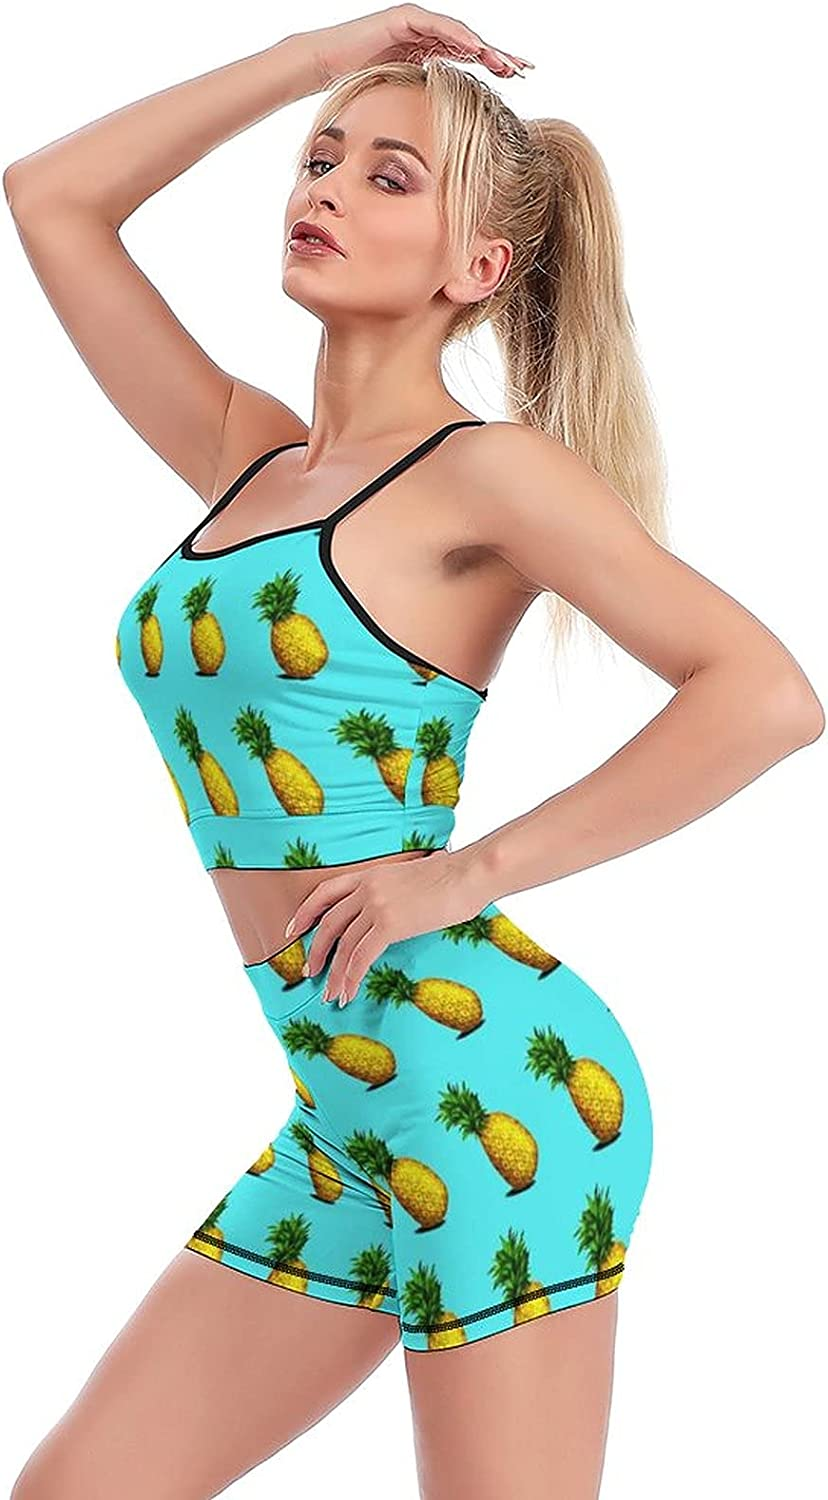 Yoga Workout Max 84% OFF Sets for Pineapples-Blue Max 77% OFF Women Shorts SportÂÂ